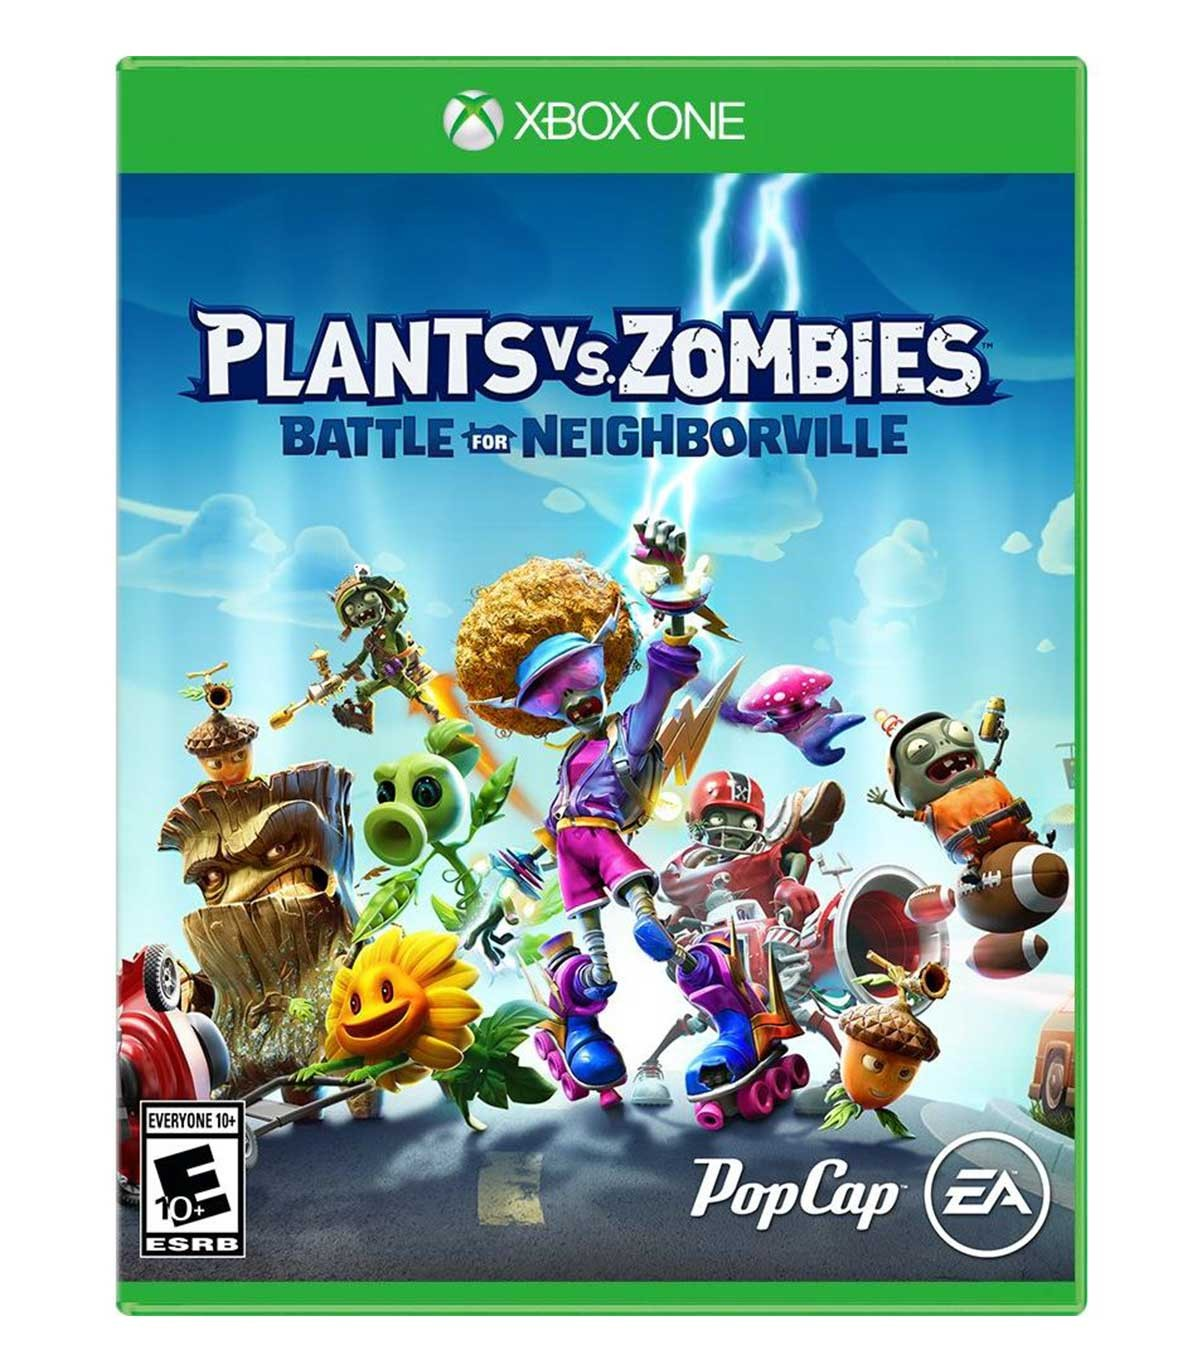 بازی Plants vs. Zombies: Battle for Neighborville - ایکس باکس